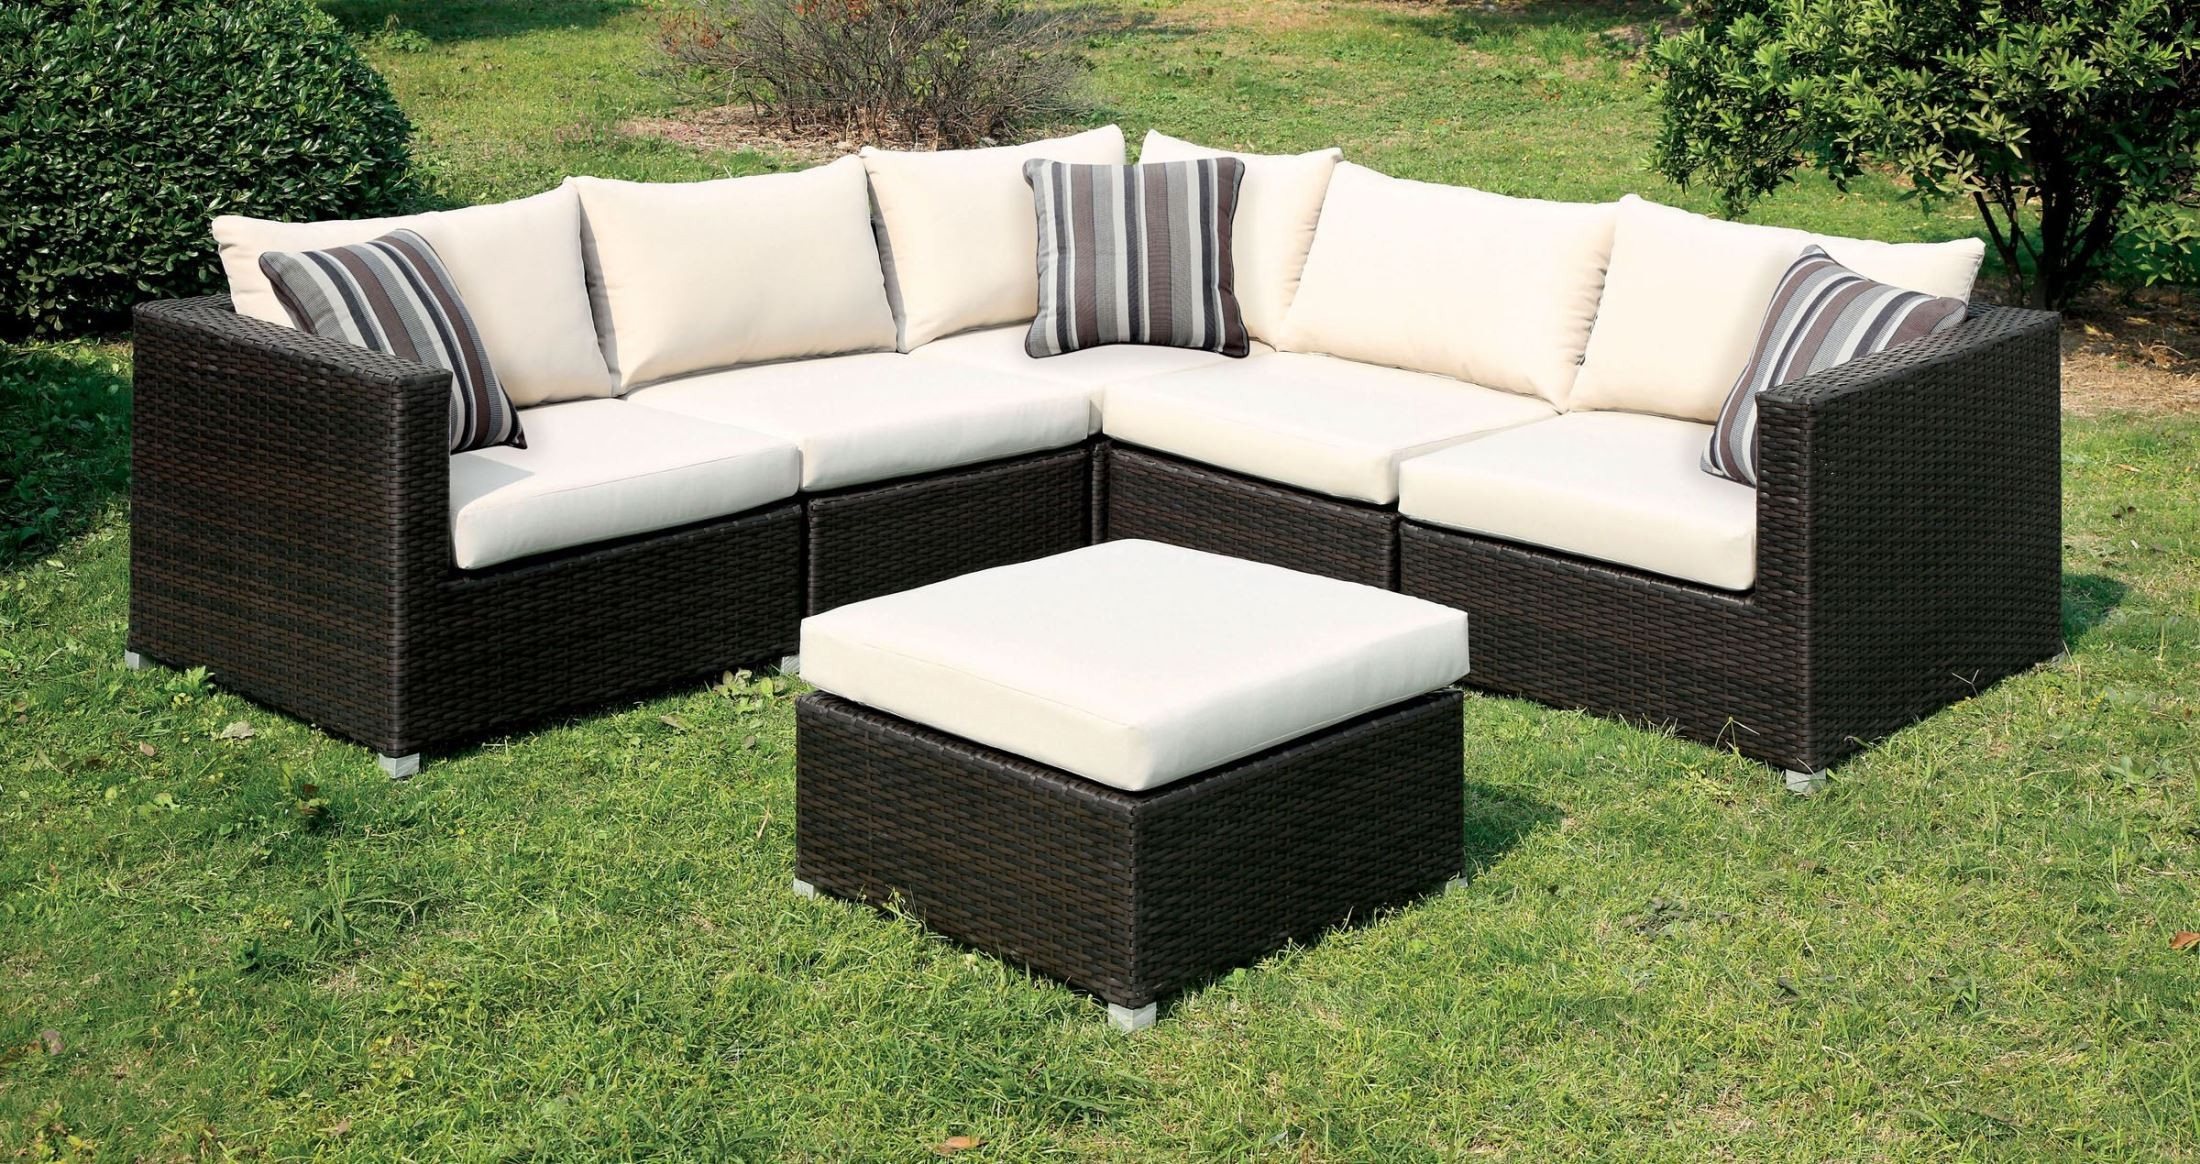 Abion ivory patio sectional from furniture of america for Sectional patio furniture